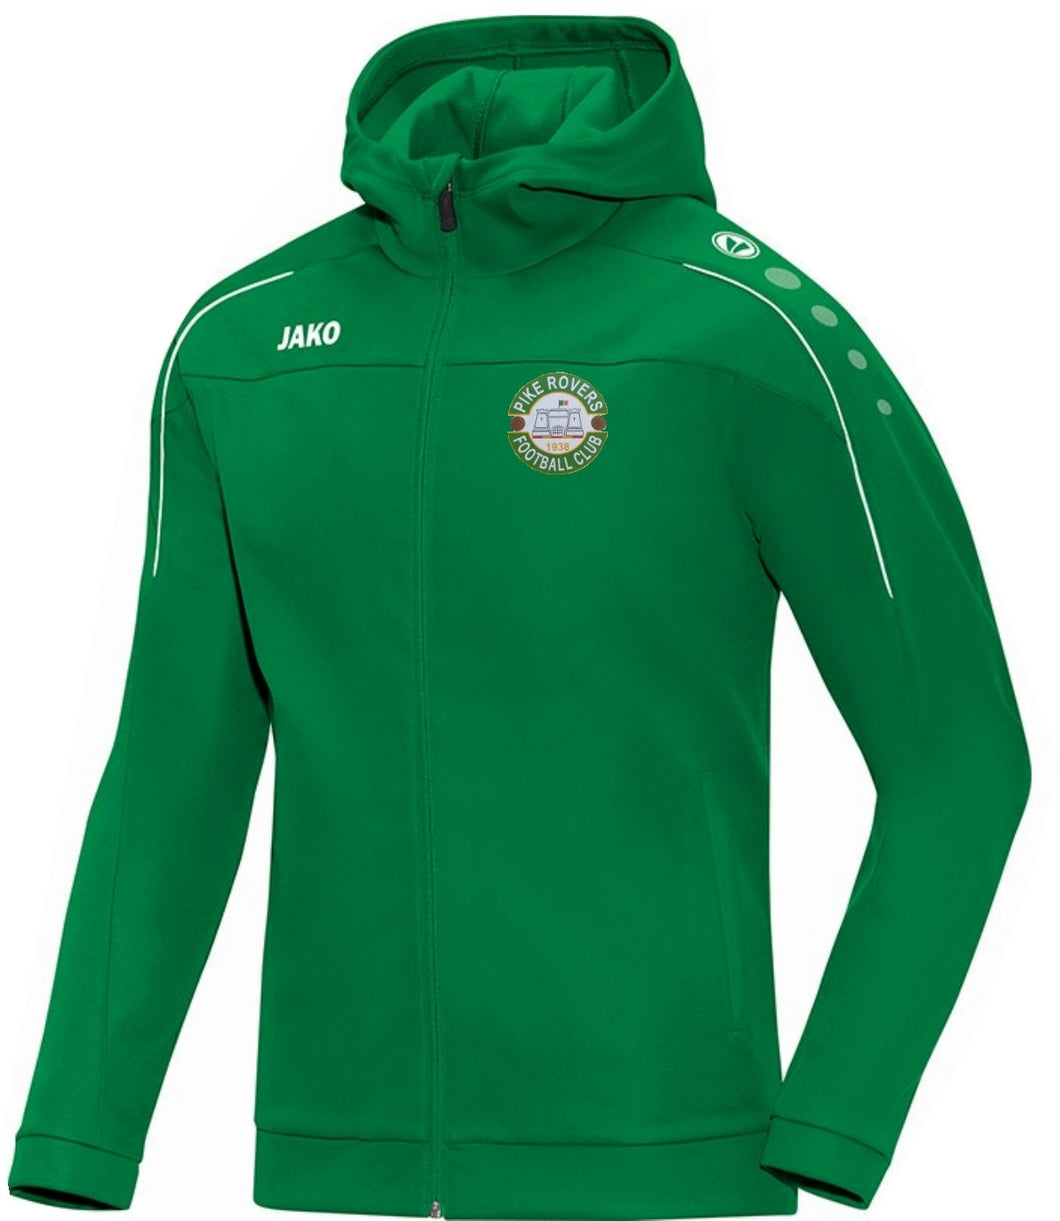 ADULT JAKO PIKE ROVERS HOODY PR6850 GREEN